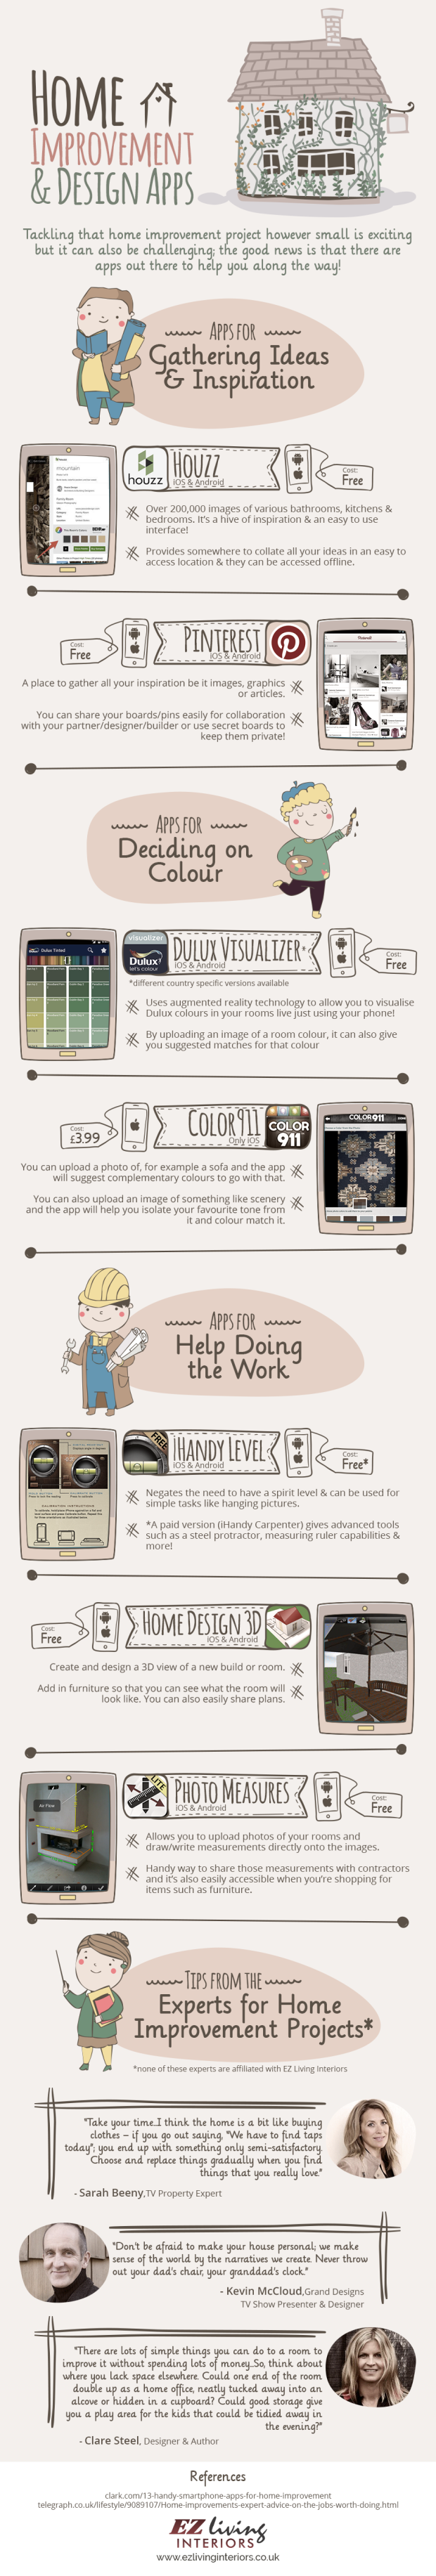 Home improvement apps infographic negosentro for Apps for home remodeling